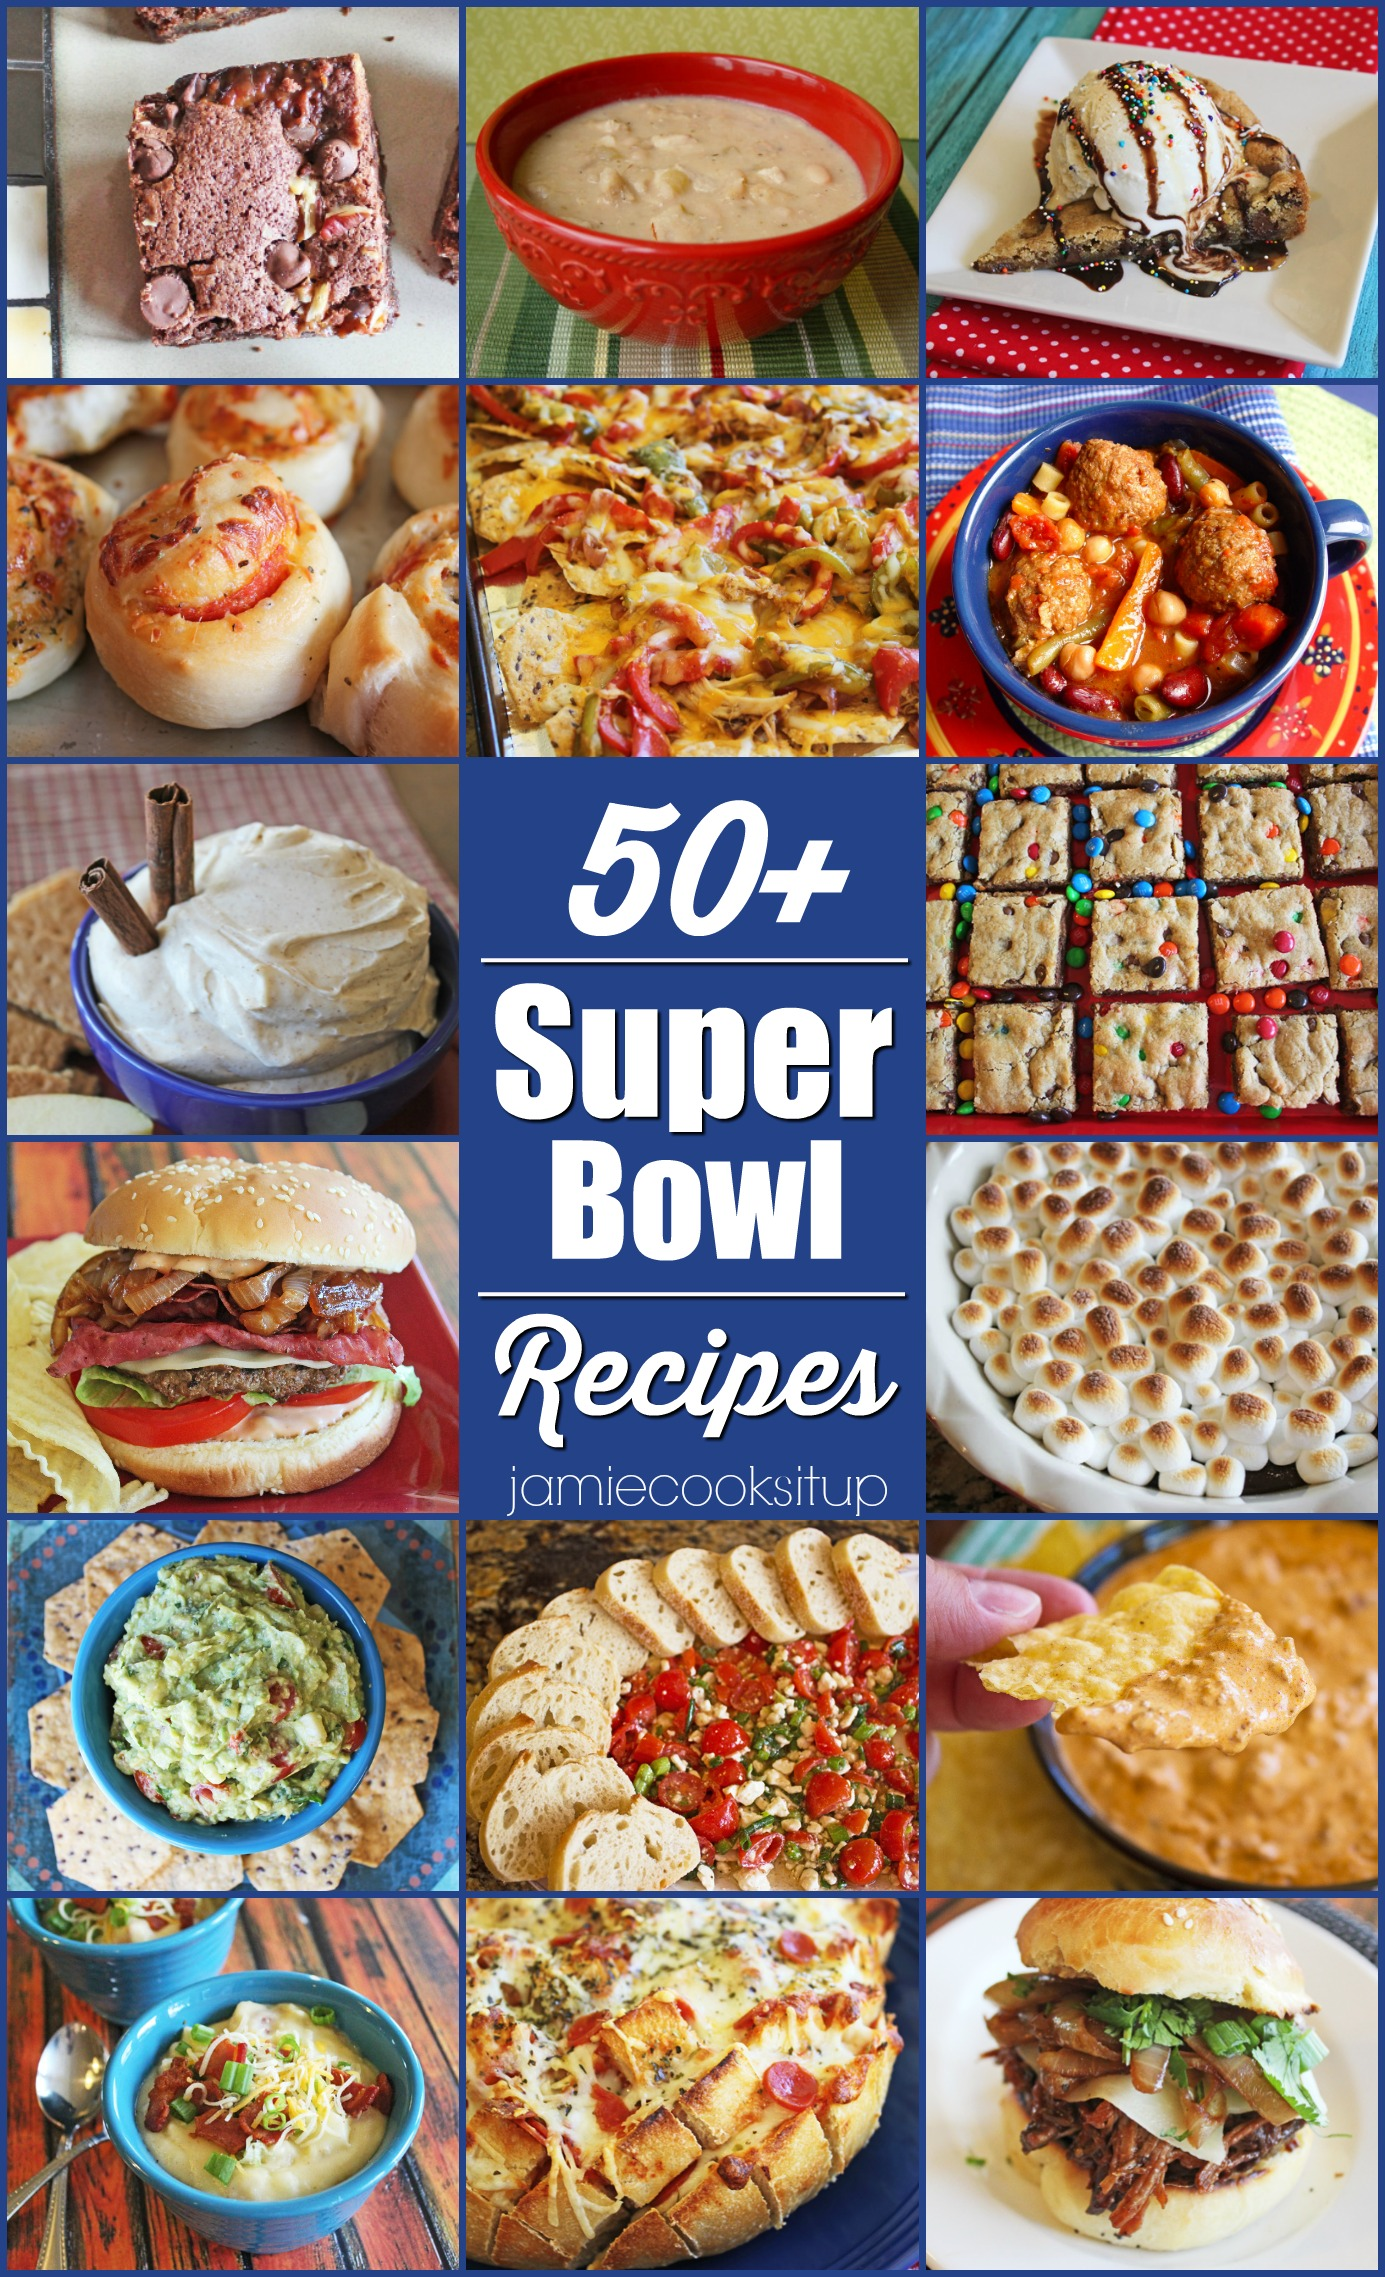 All the SUPER BOWL recipes!